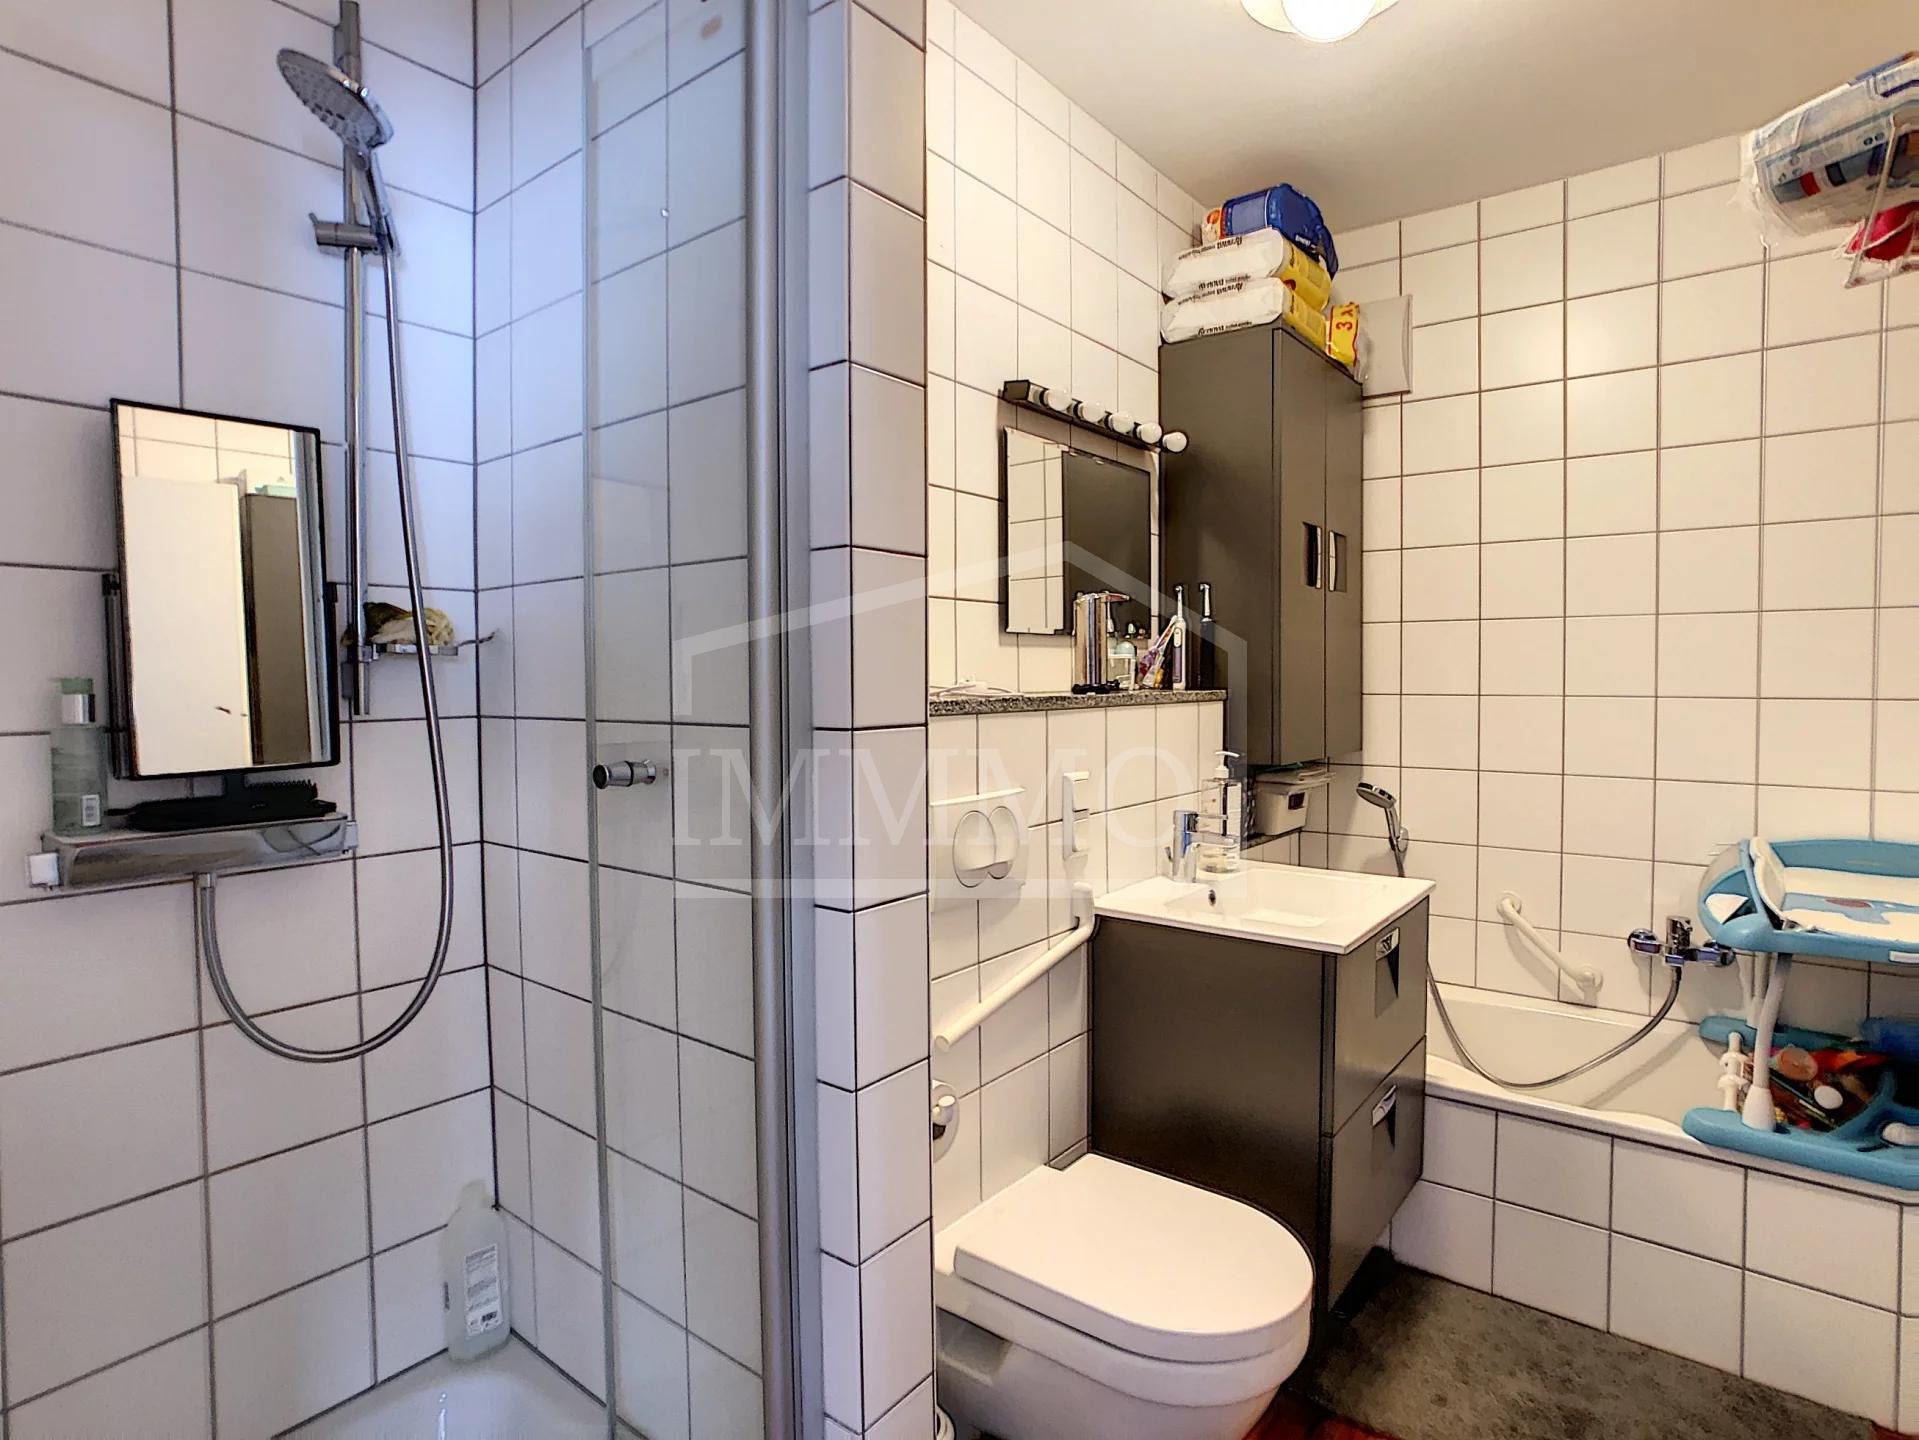 Appartement 2 chambres - Luxembourg Gare